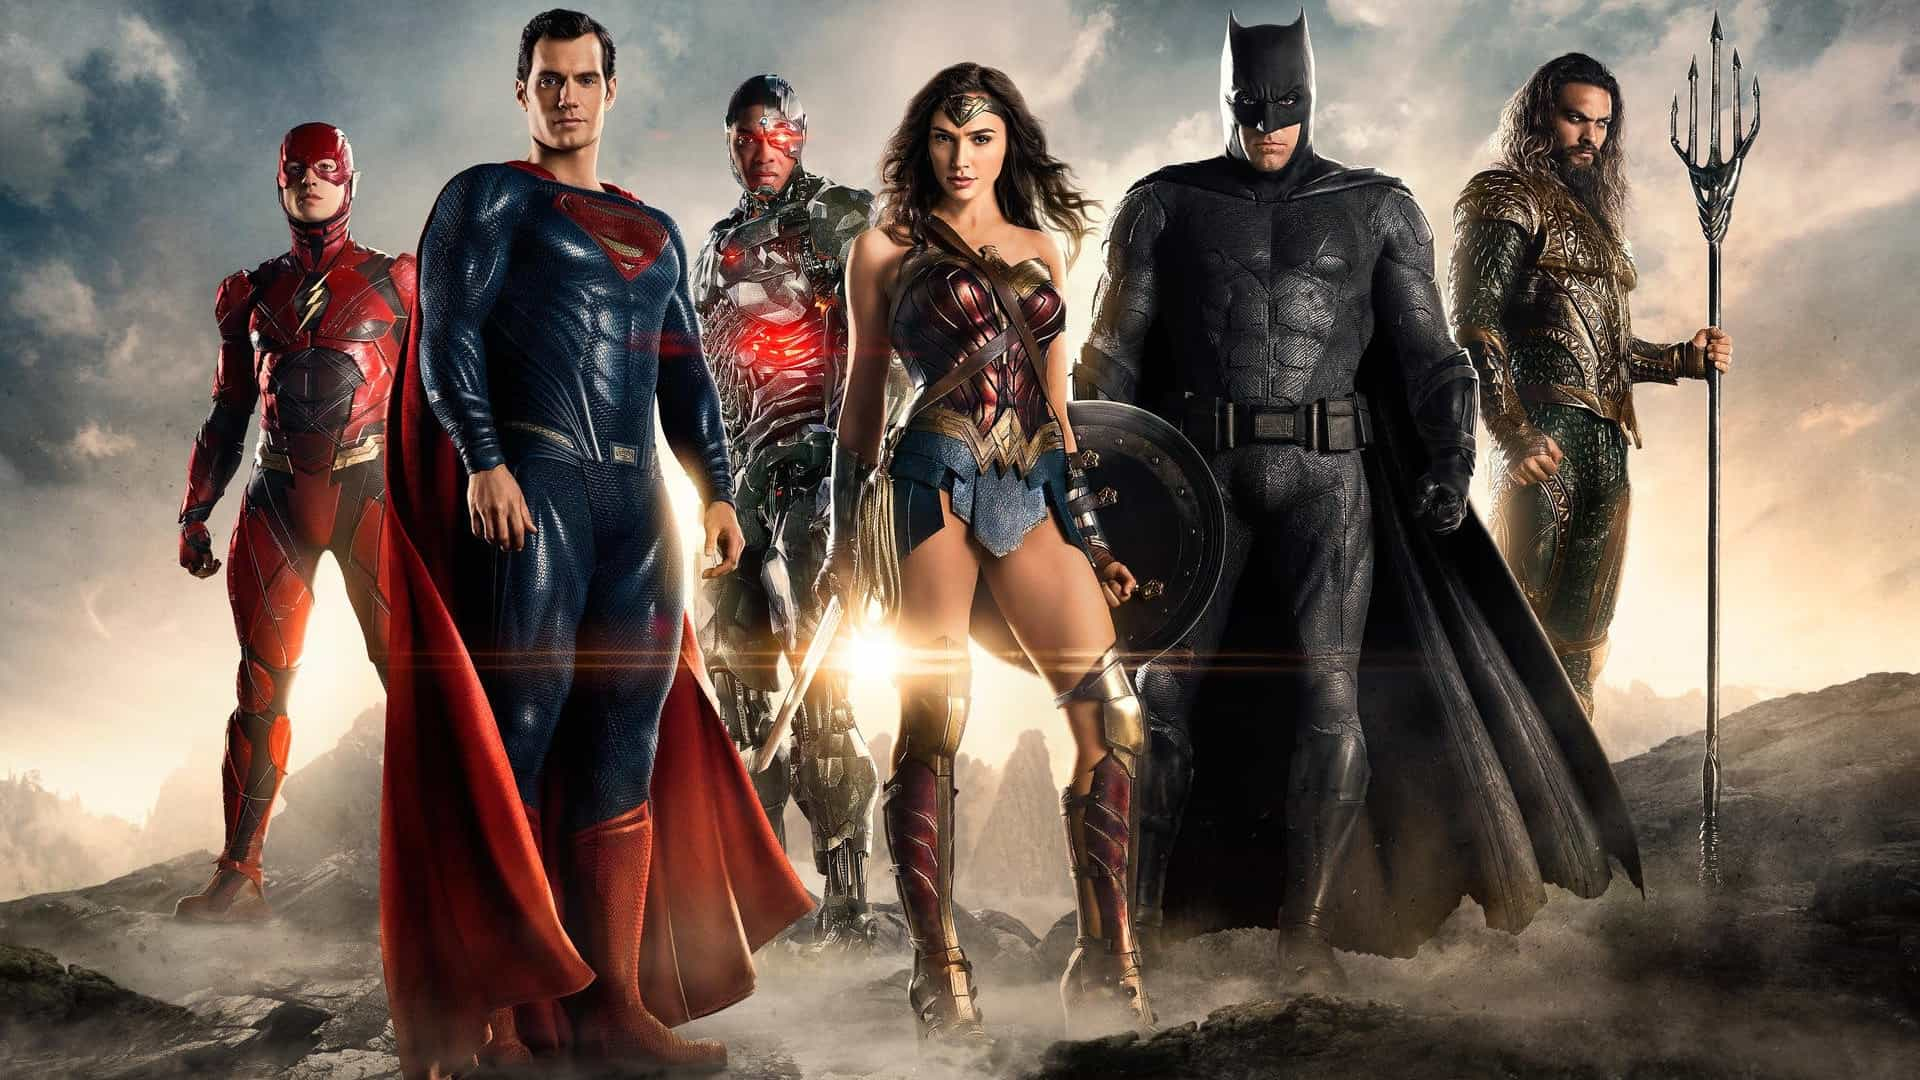 DC Fans Use Their Money for a Good Cause on Release Day of 'Justice League'